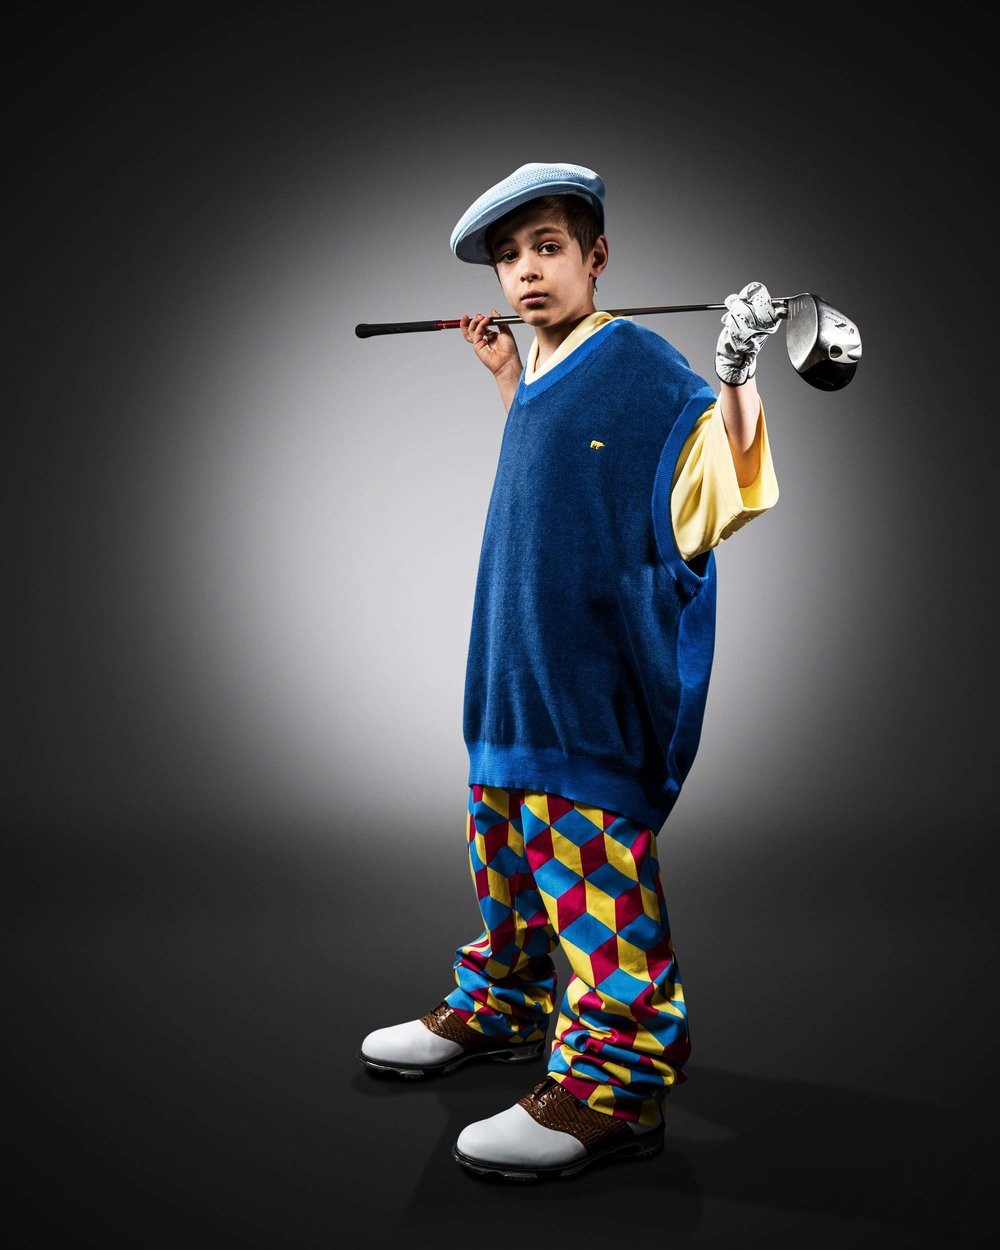 KidGolf_JMichaelTuckerPhotography.jpg